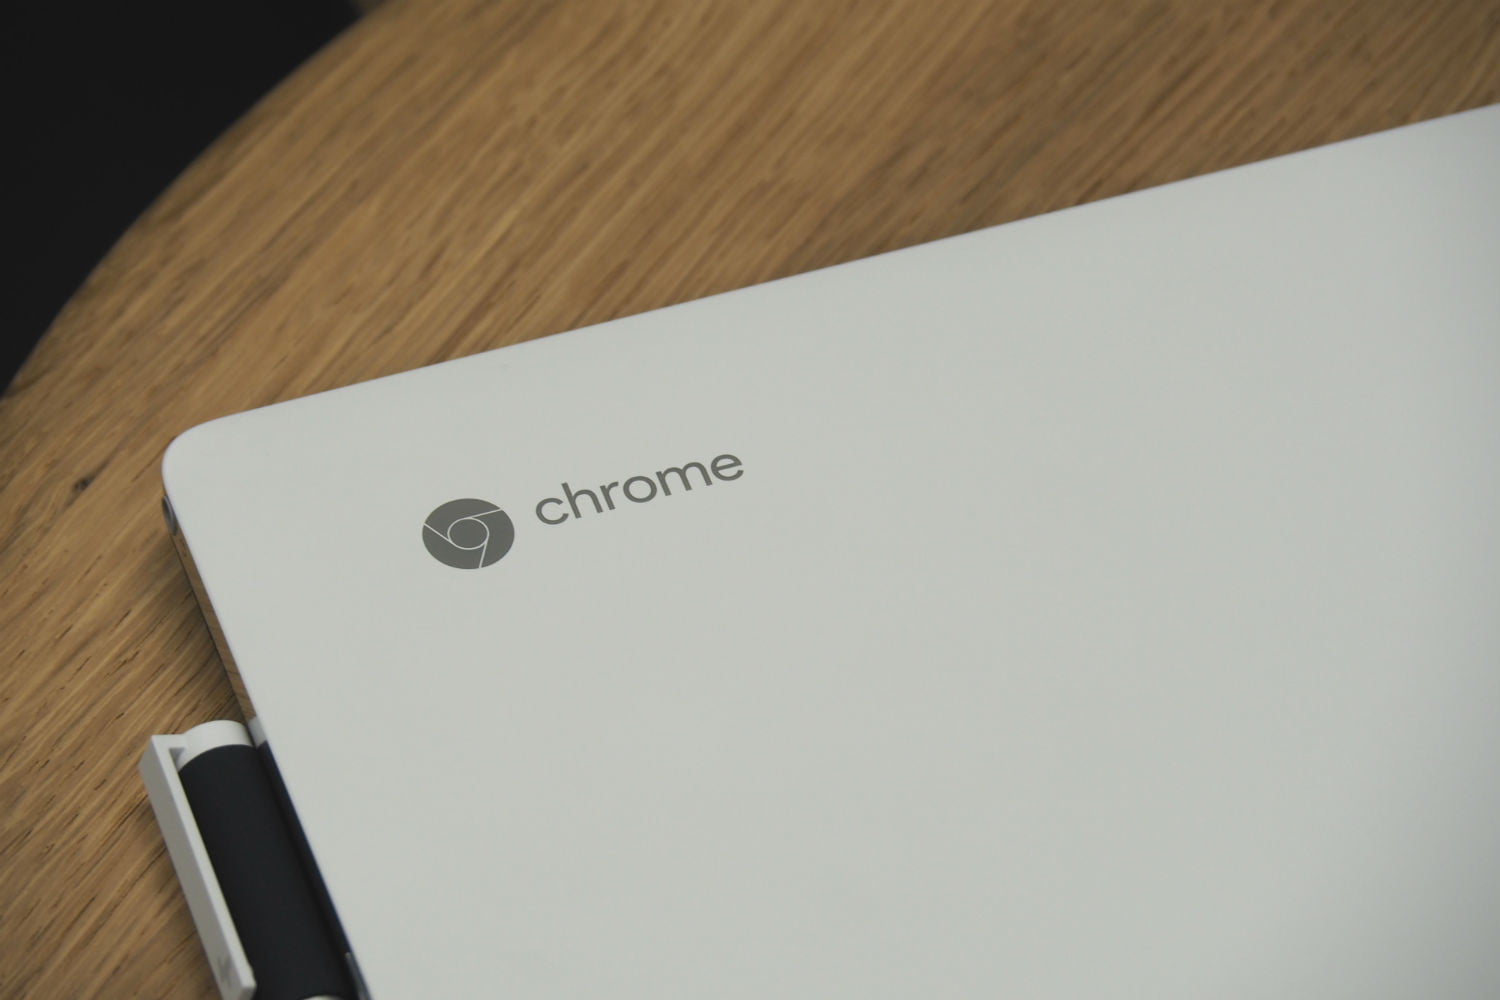 The Best Chromebooks for 2019: Google, HP, Lenovo, and More